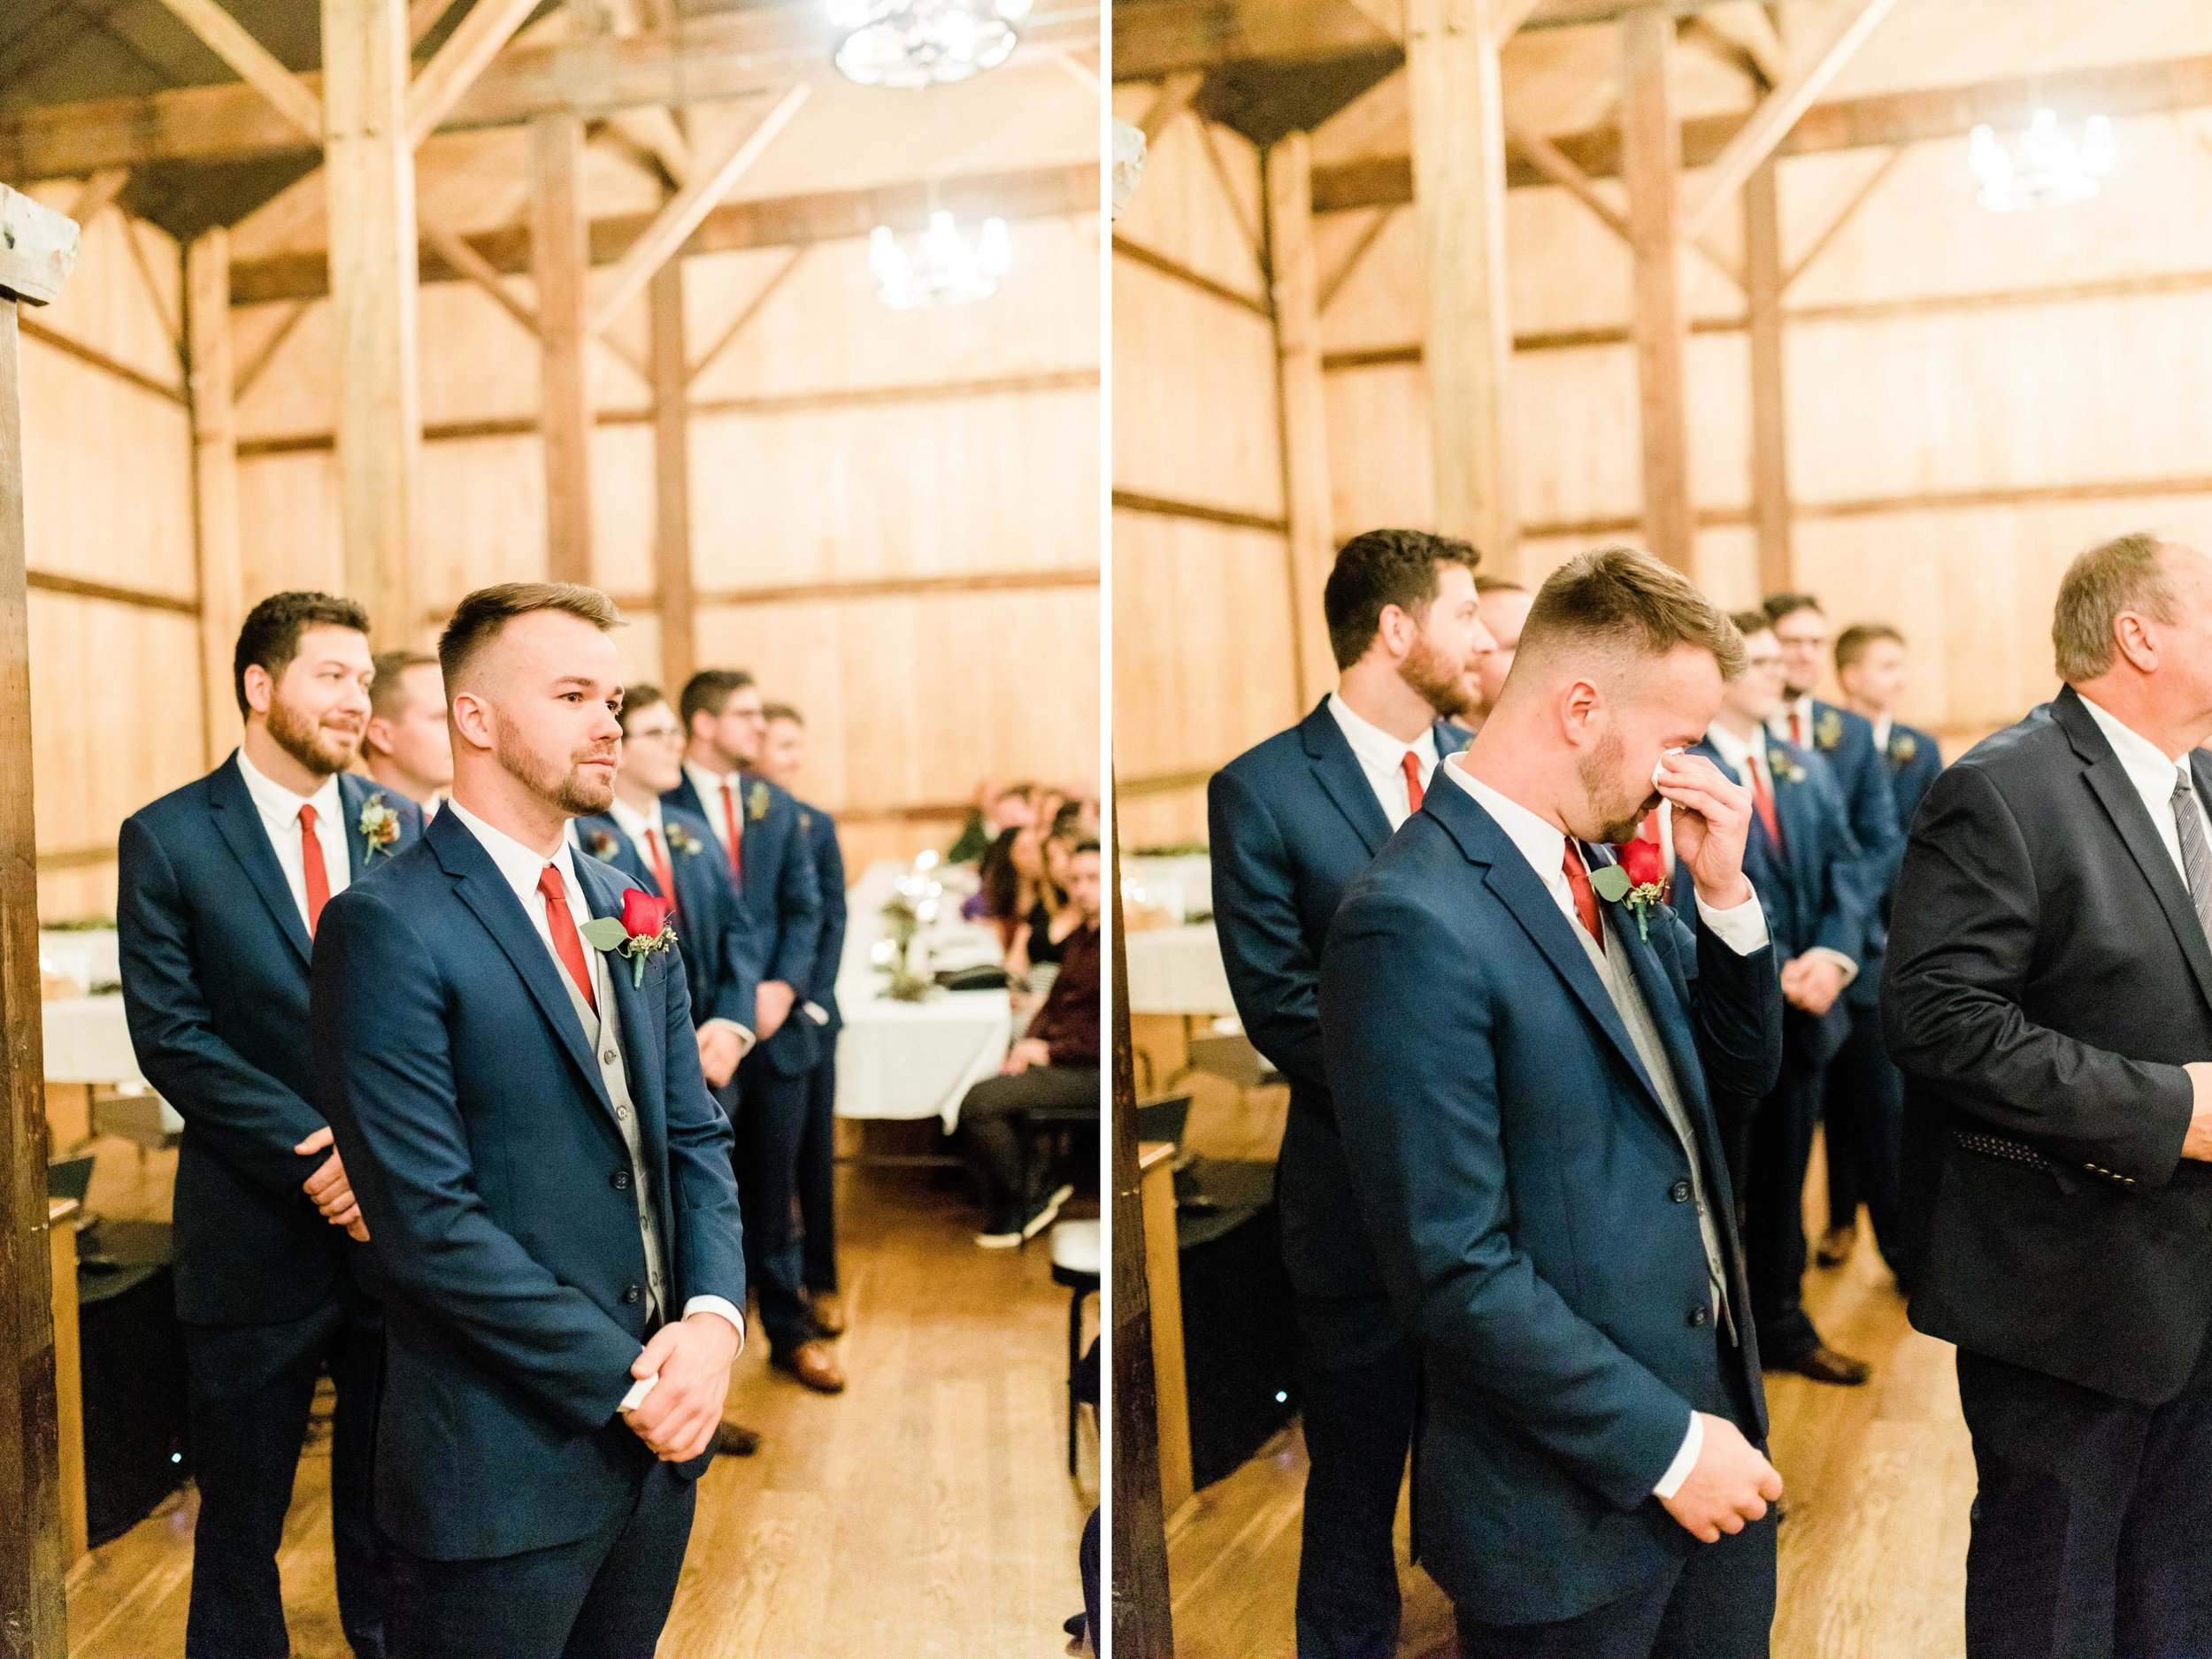 the heartland barn wedding ceremony.jpg